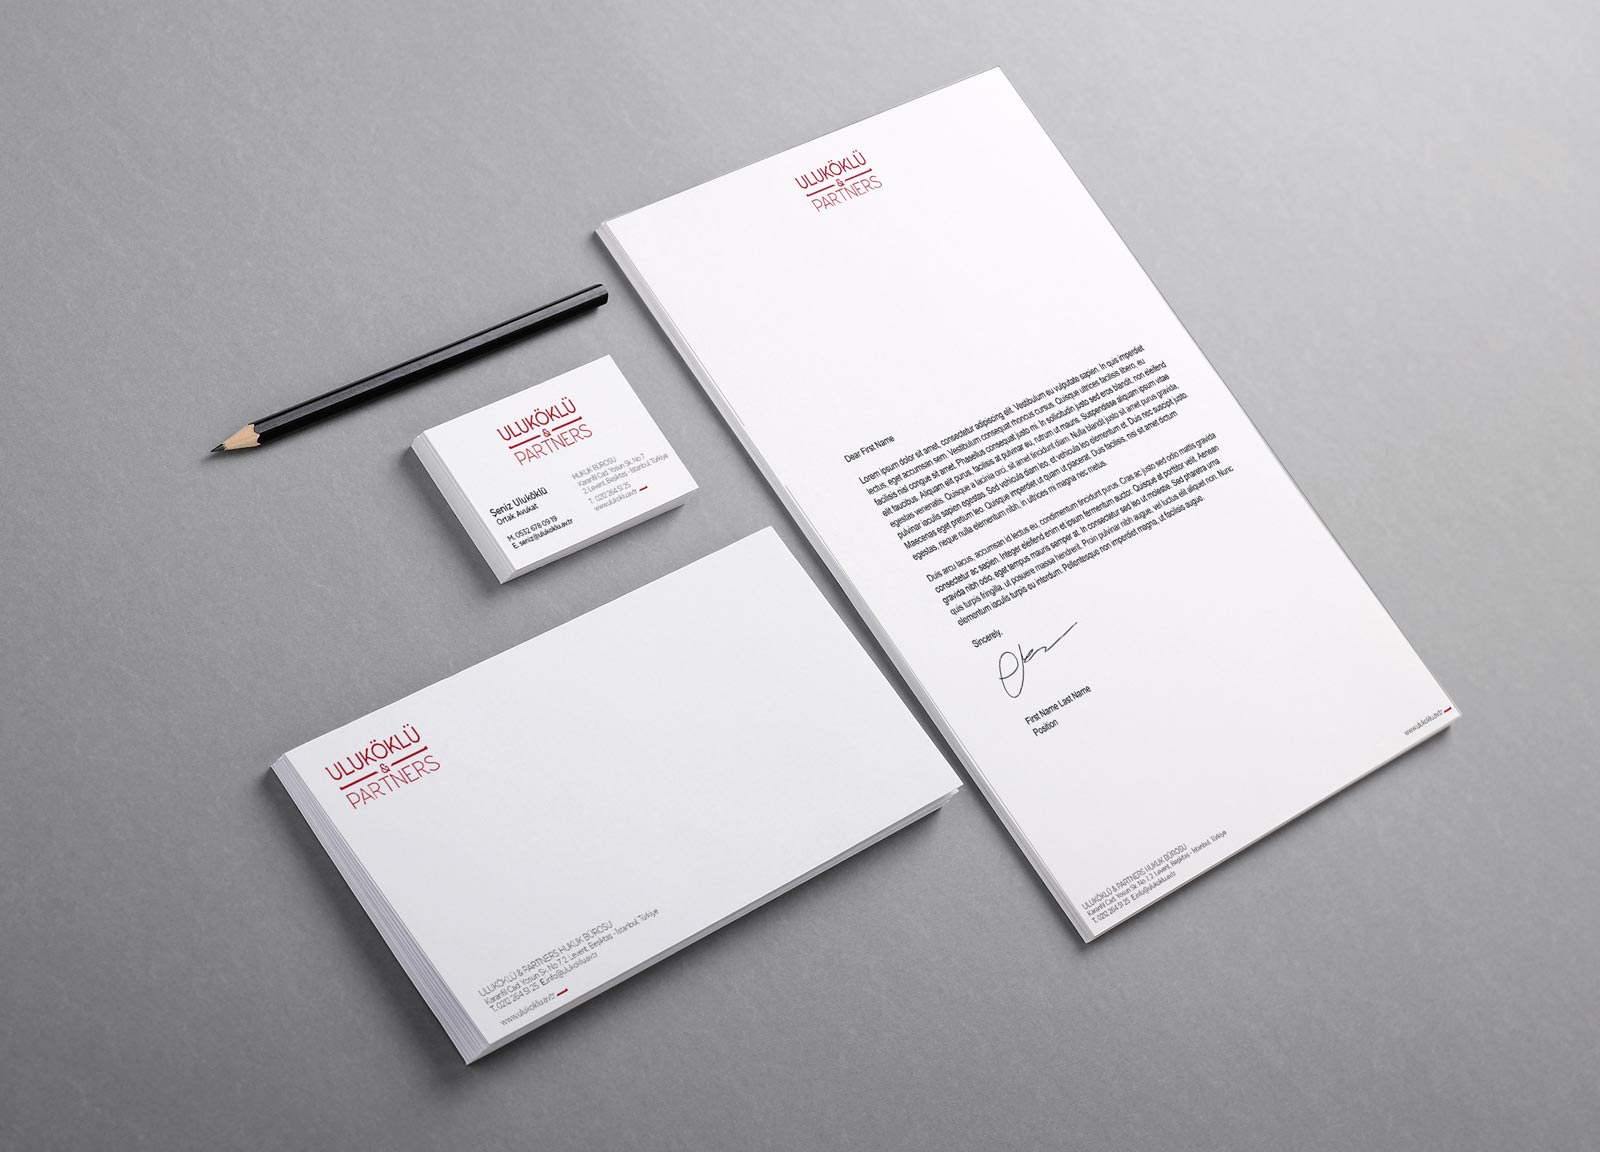 Uluköklü & Partners Stationary